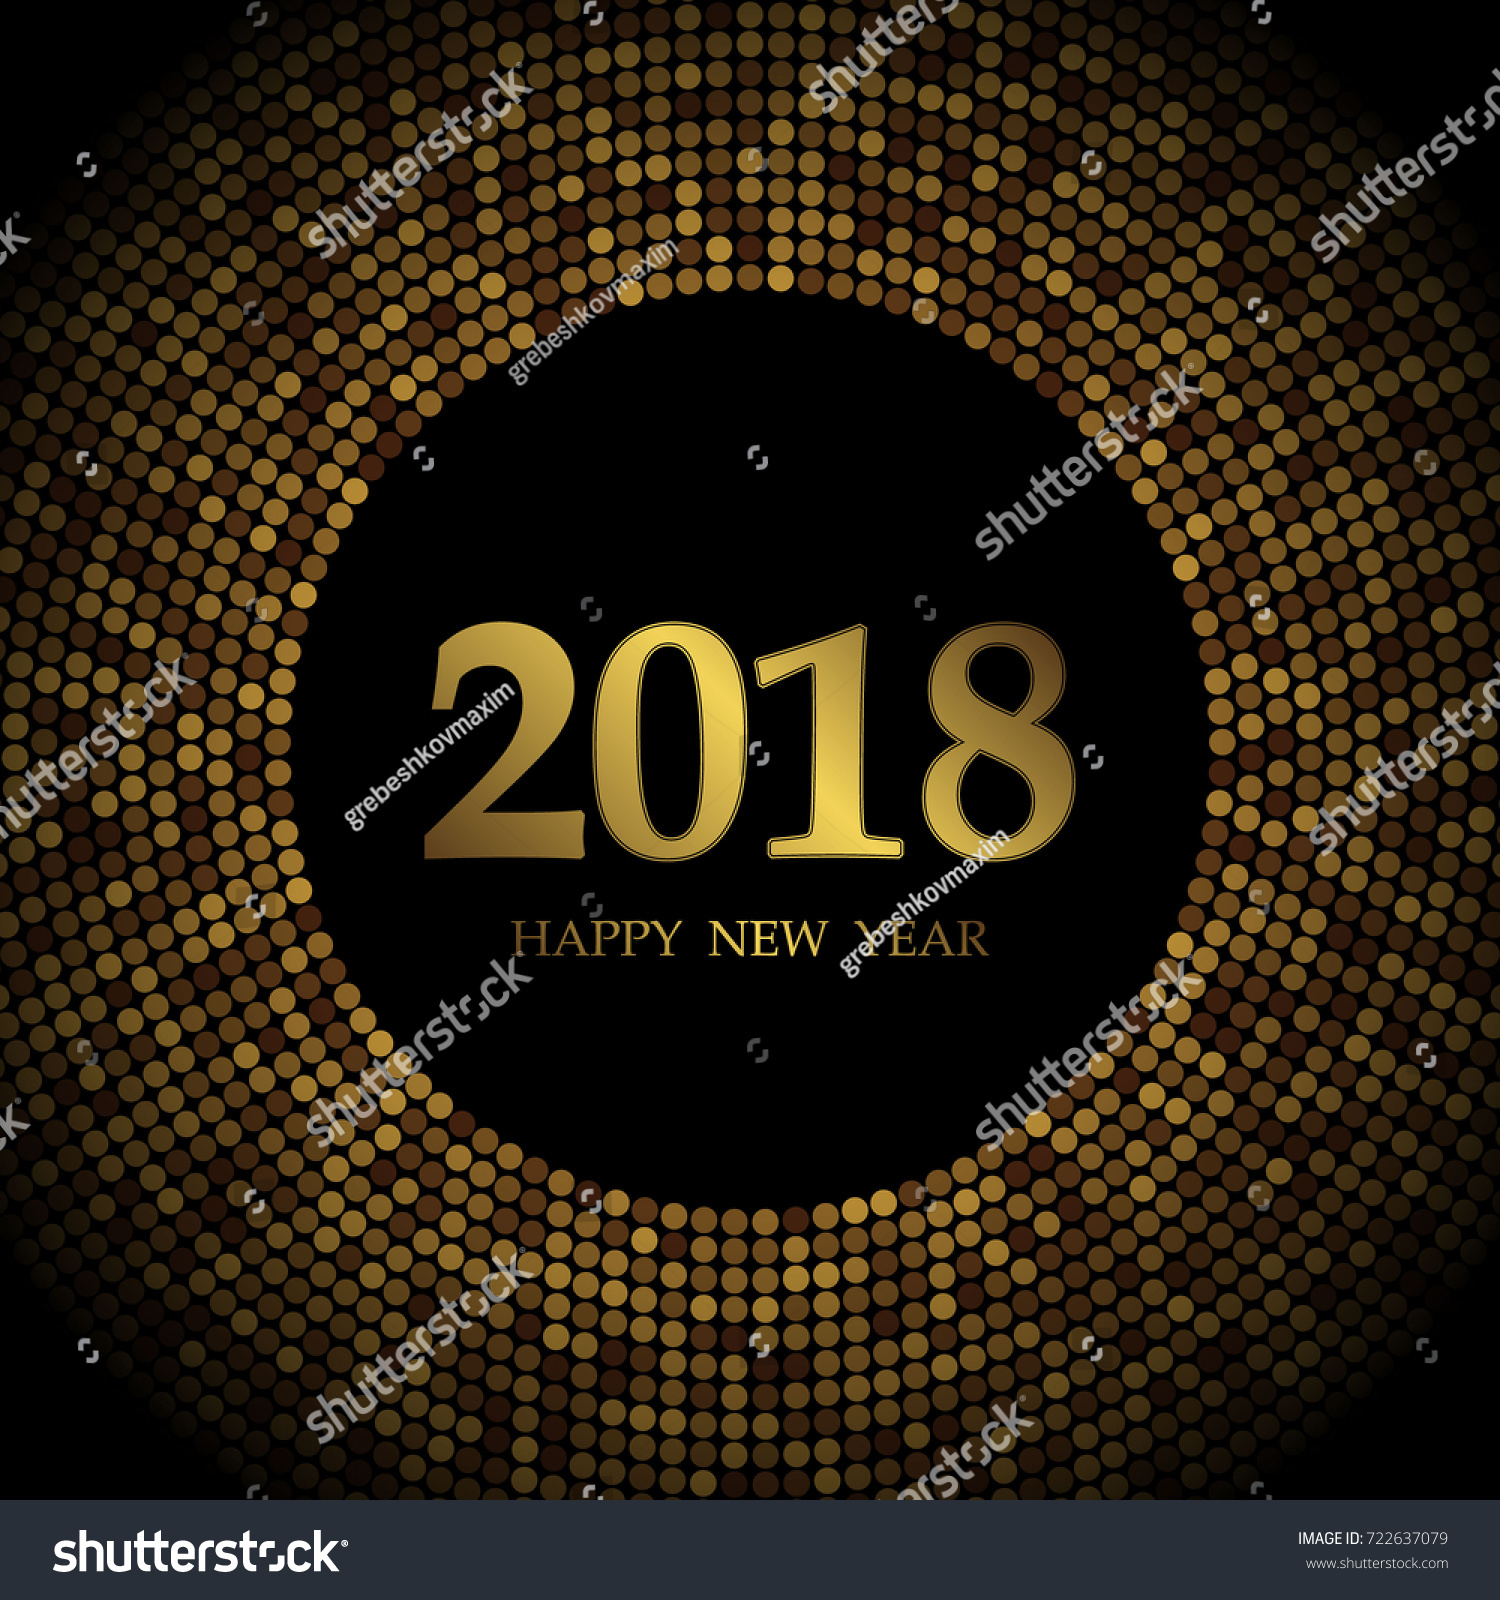 happy new year 2018 with gold disco glitter frame festive premium design template for holiday